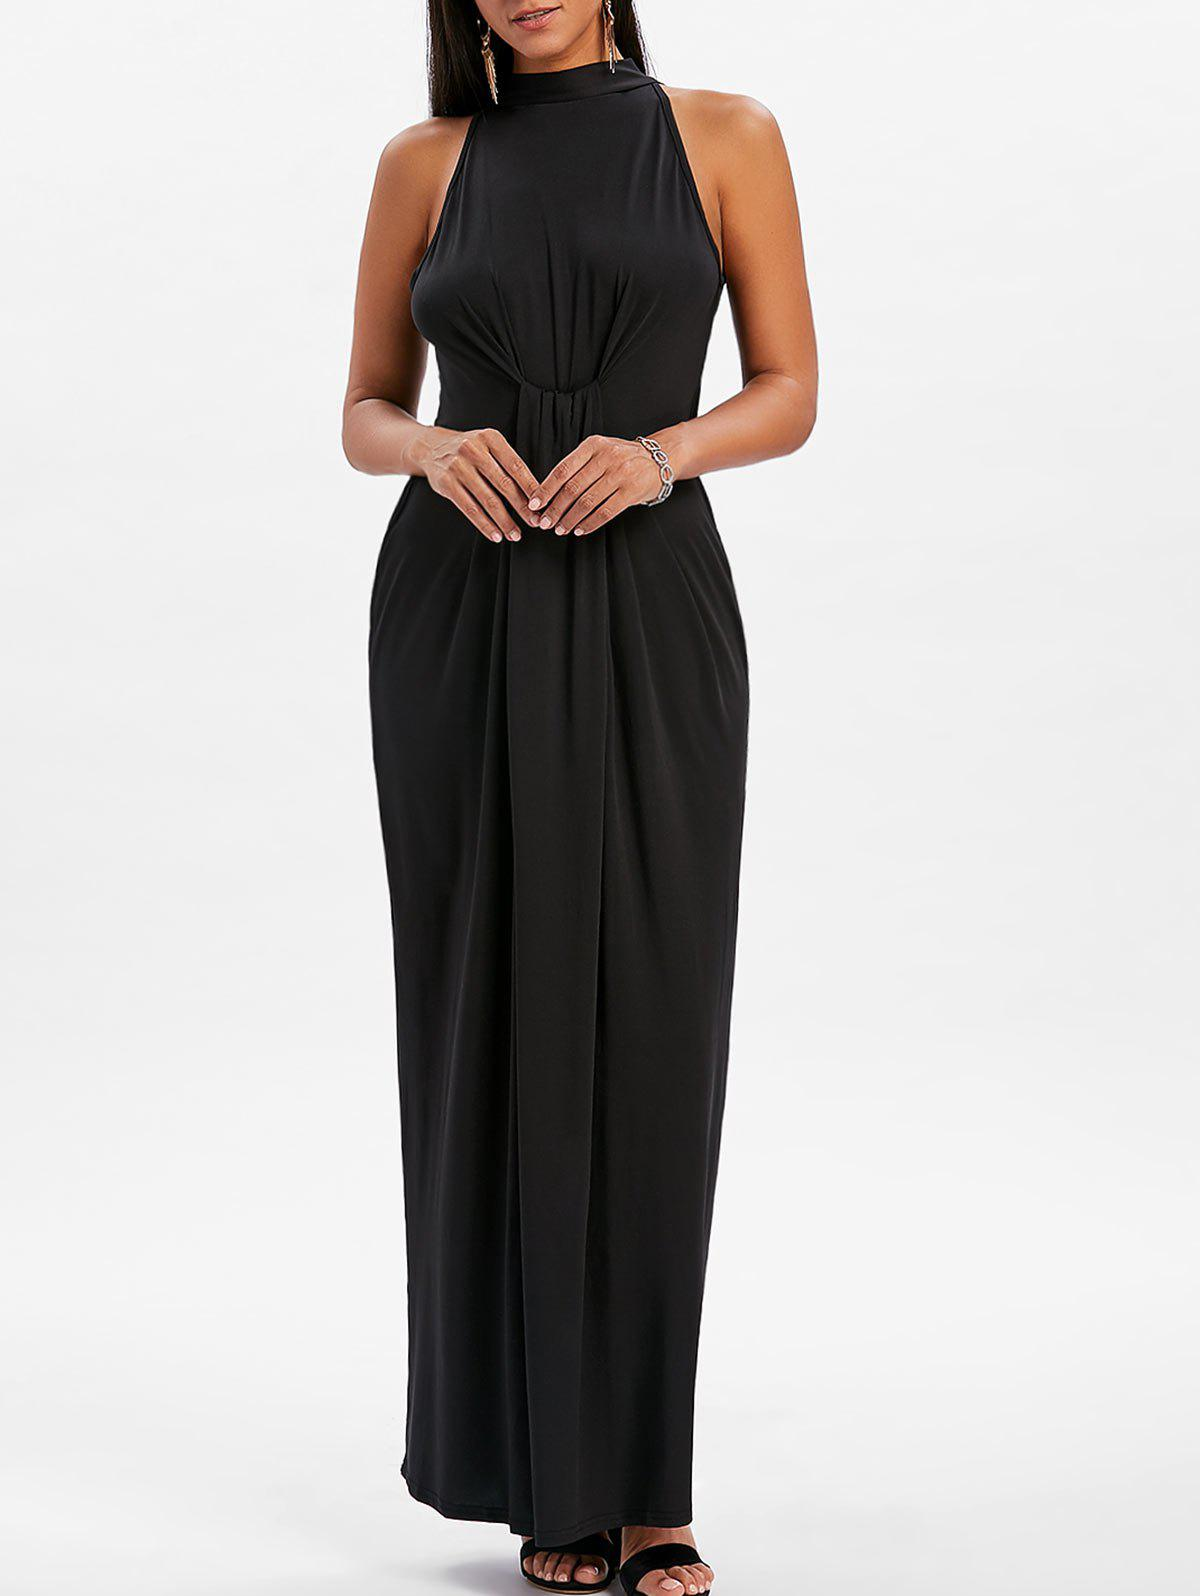 Knot Back Cut Out Maxi Dress - BLACK 2XL